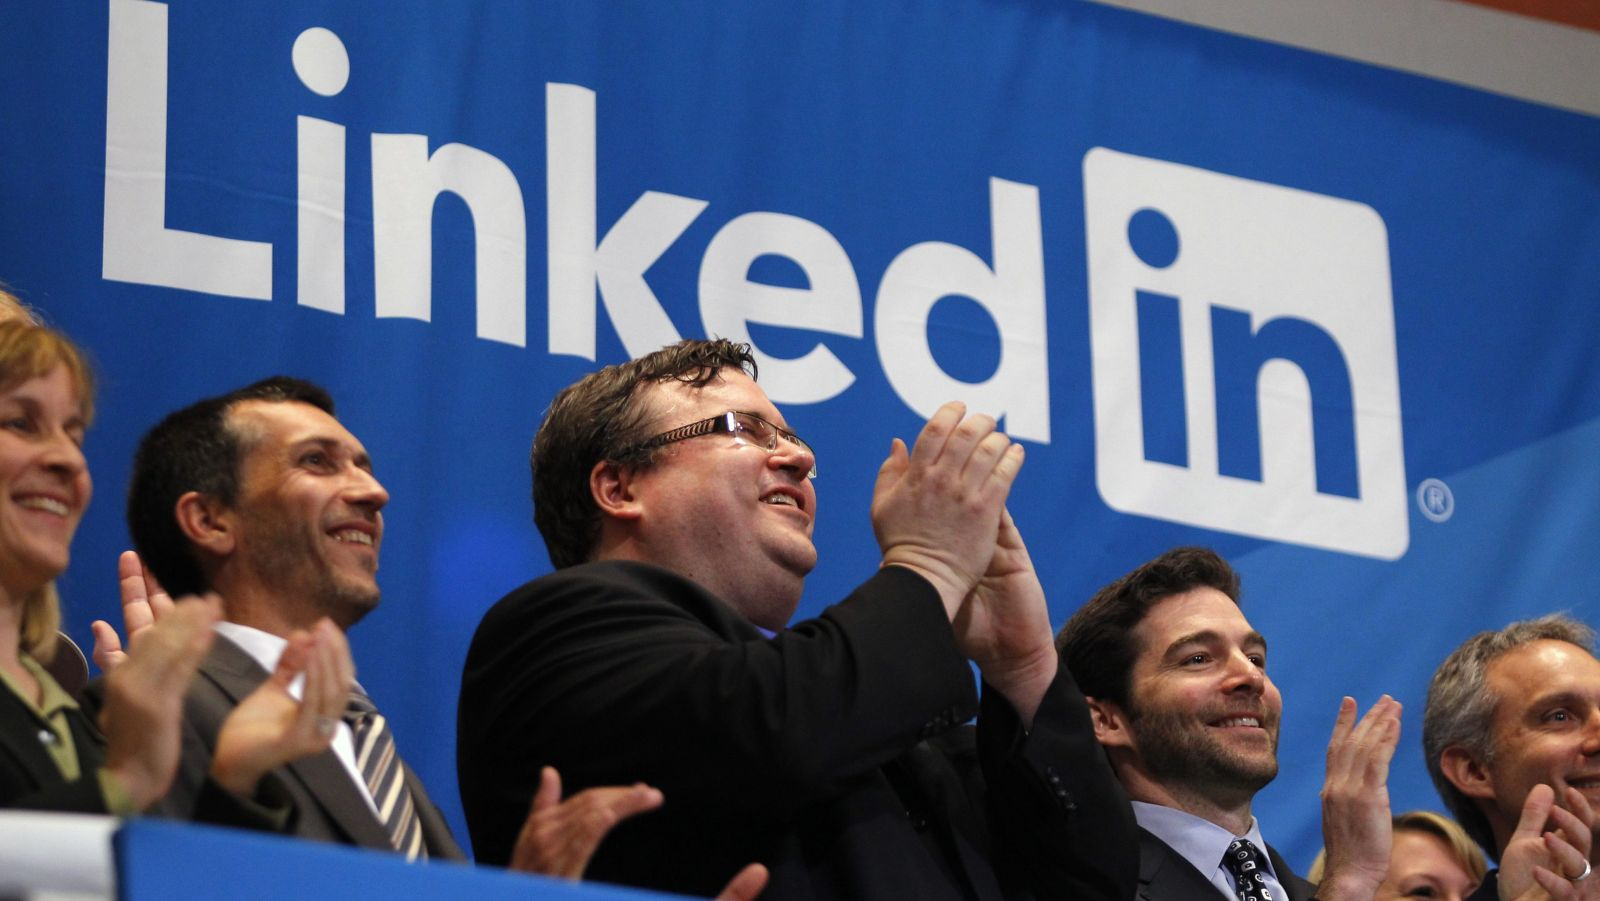 LinkedIn doesn't have to make sense to us. It just is.